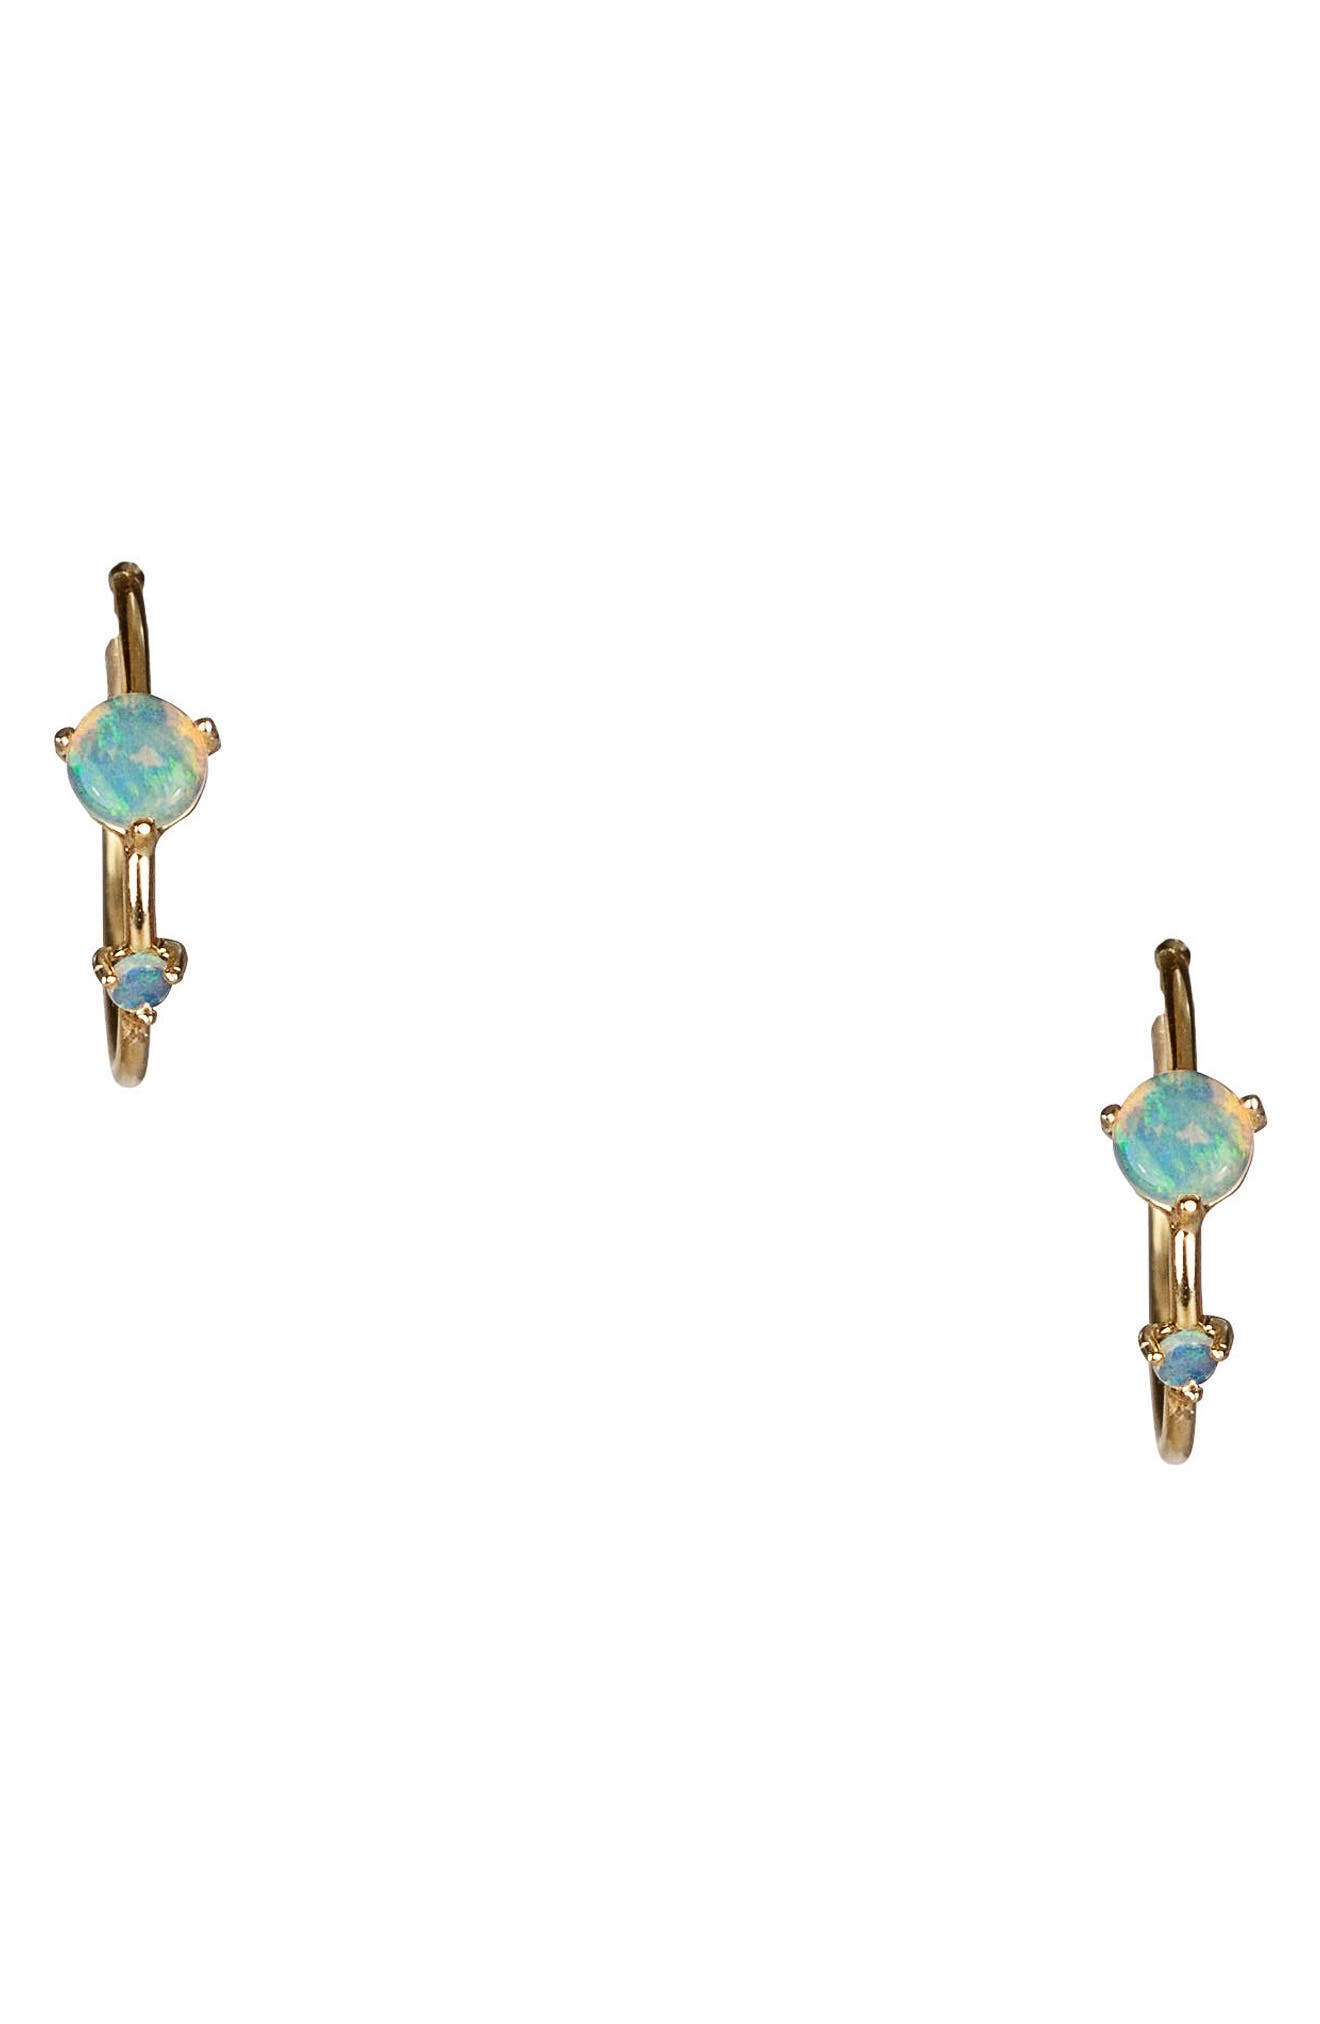 Counting Collection Small Two-Step Opal & Diamond Hoop Earrings,                         Main,                         color, OPAL